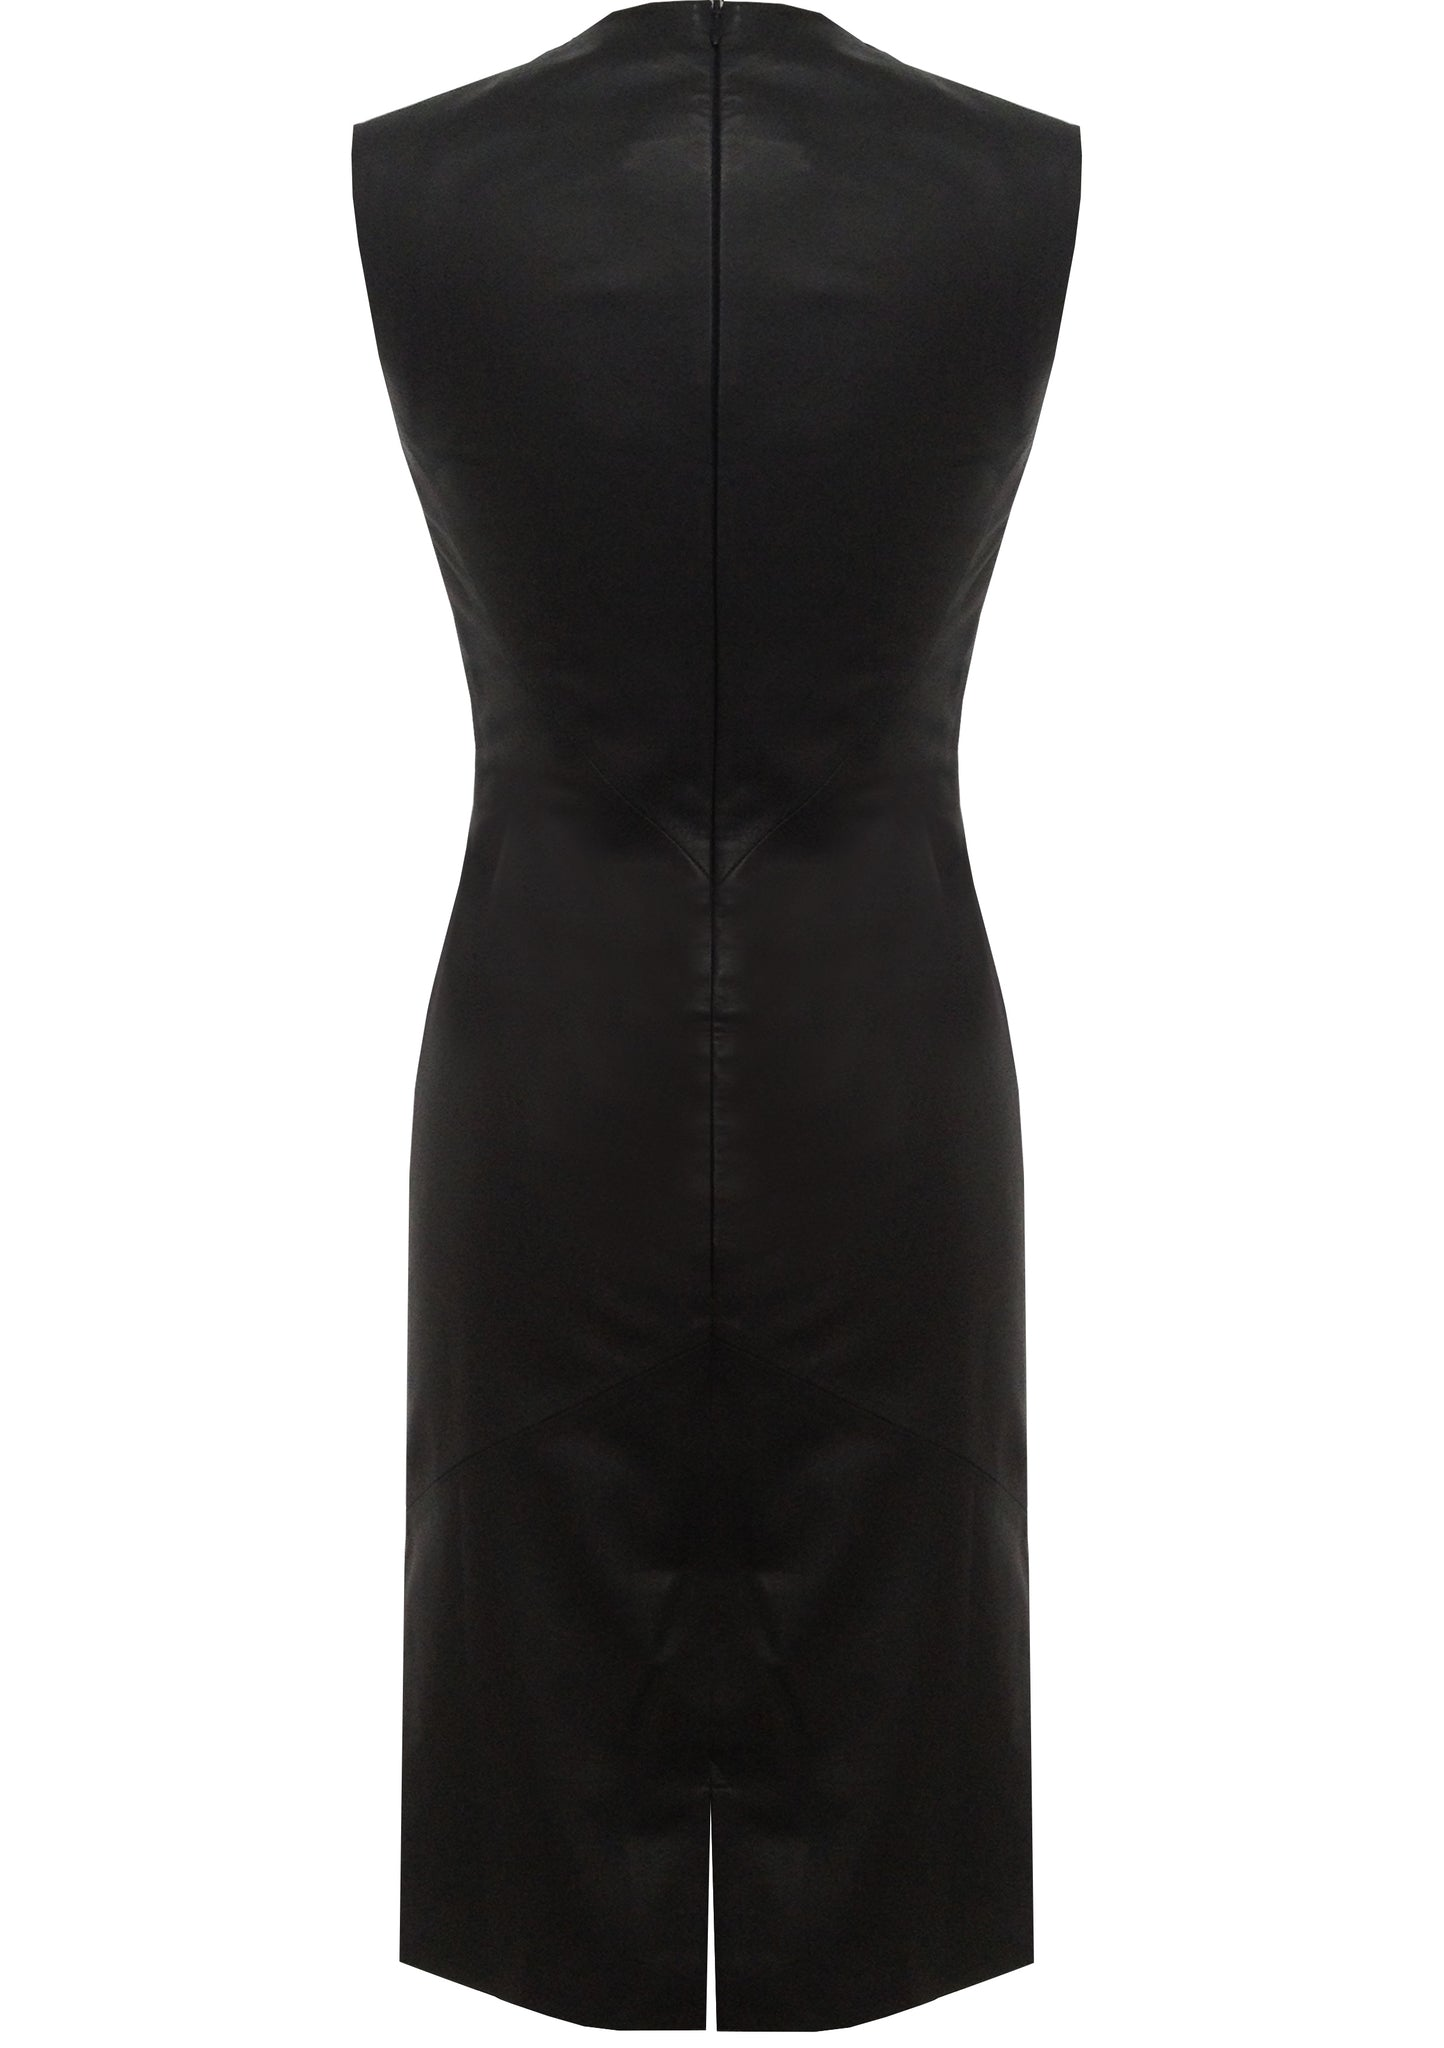 Peggy leather Dress - HEMYCA London